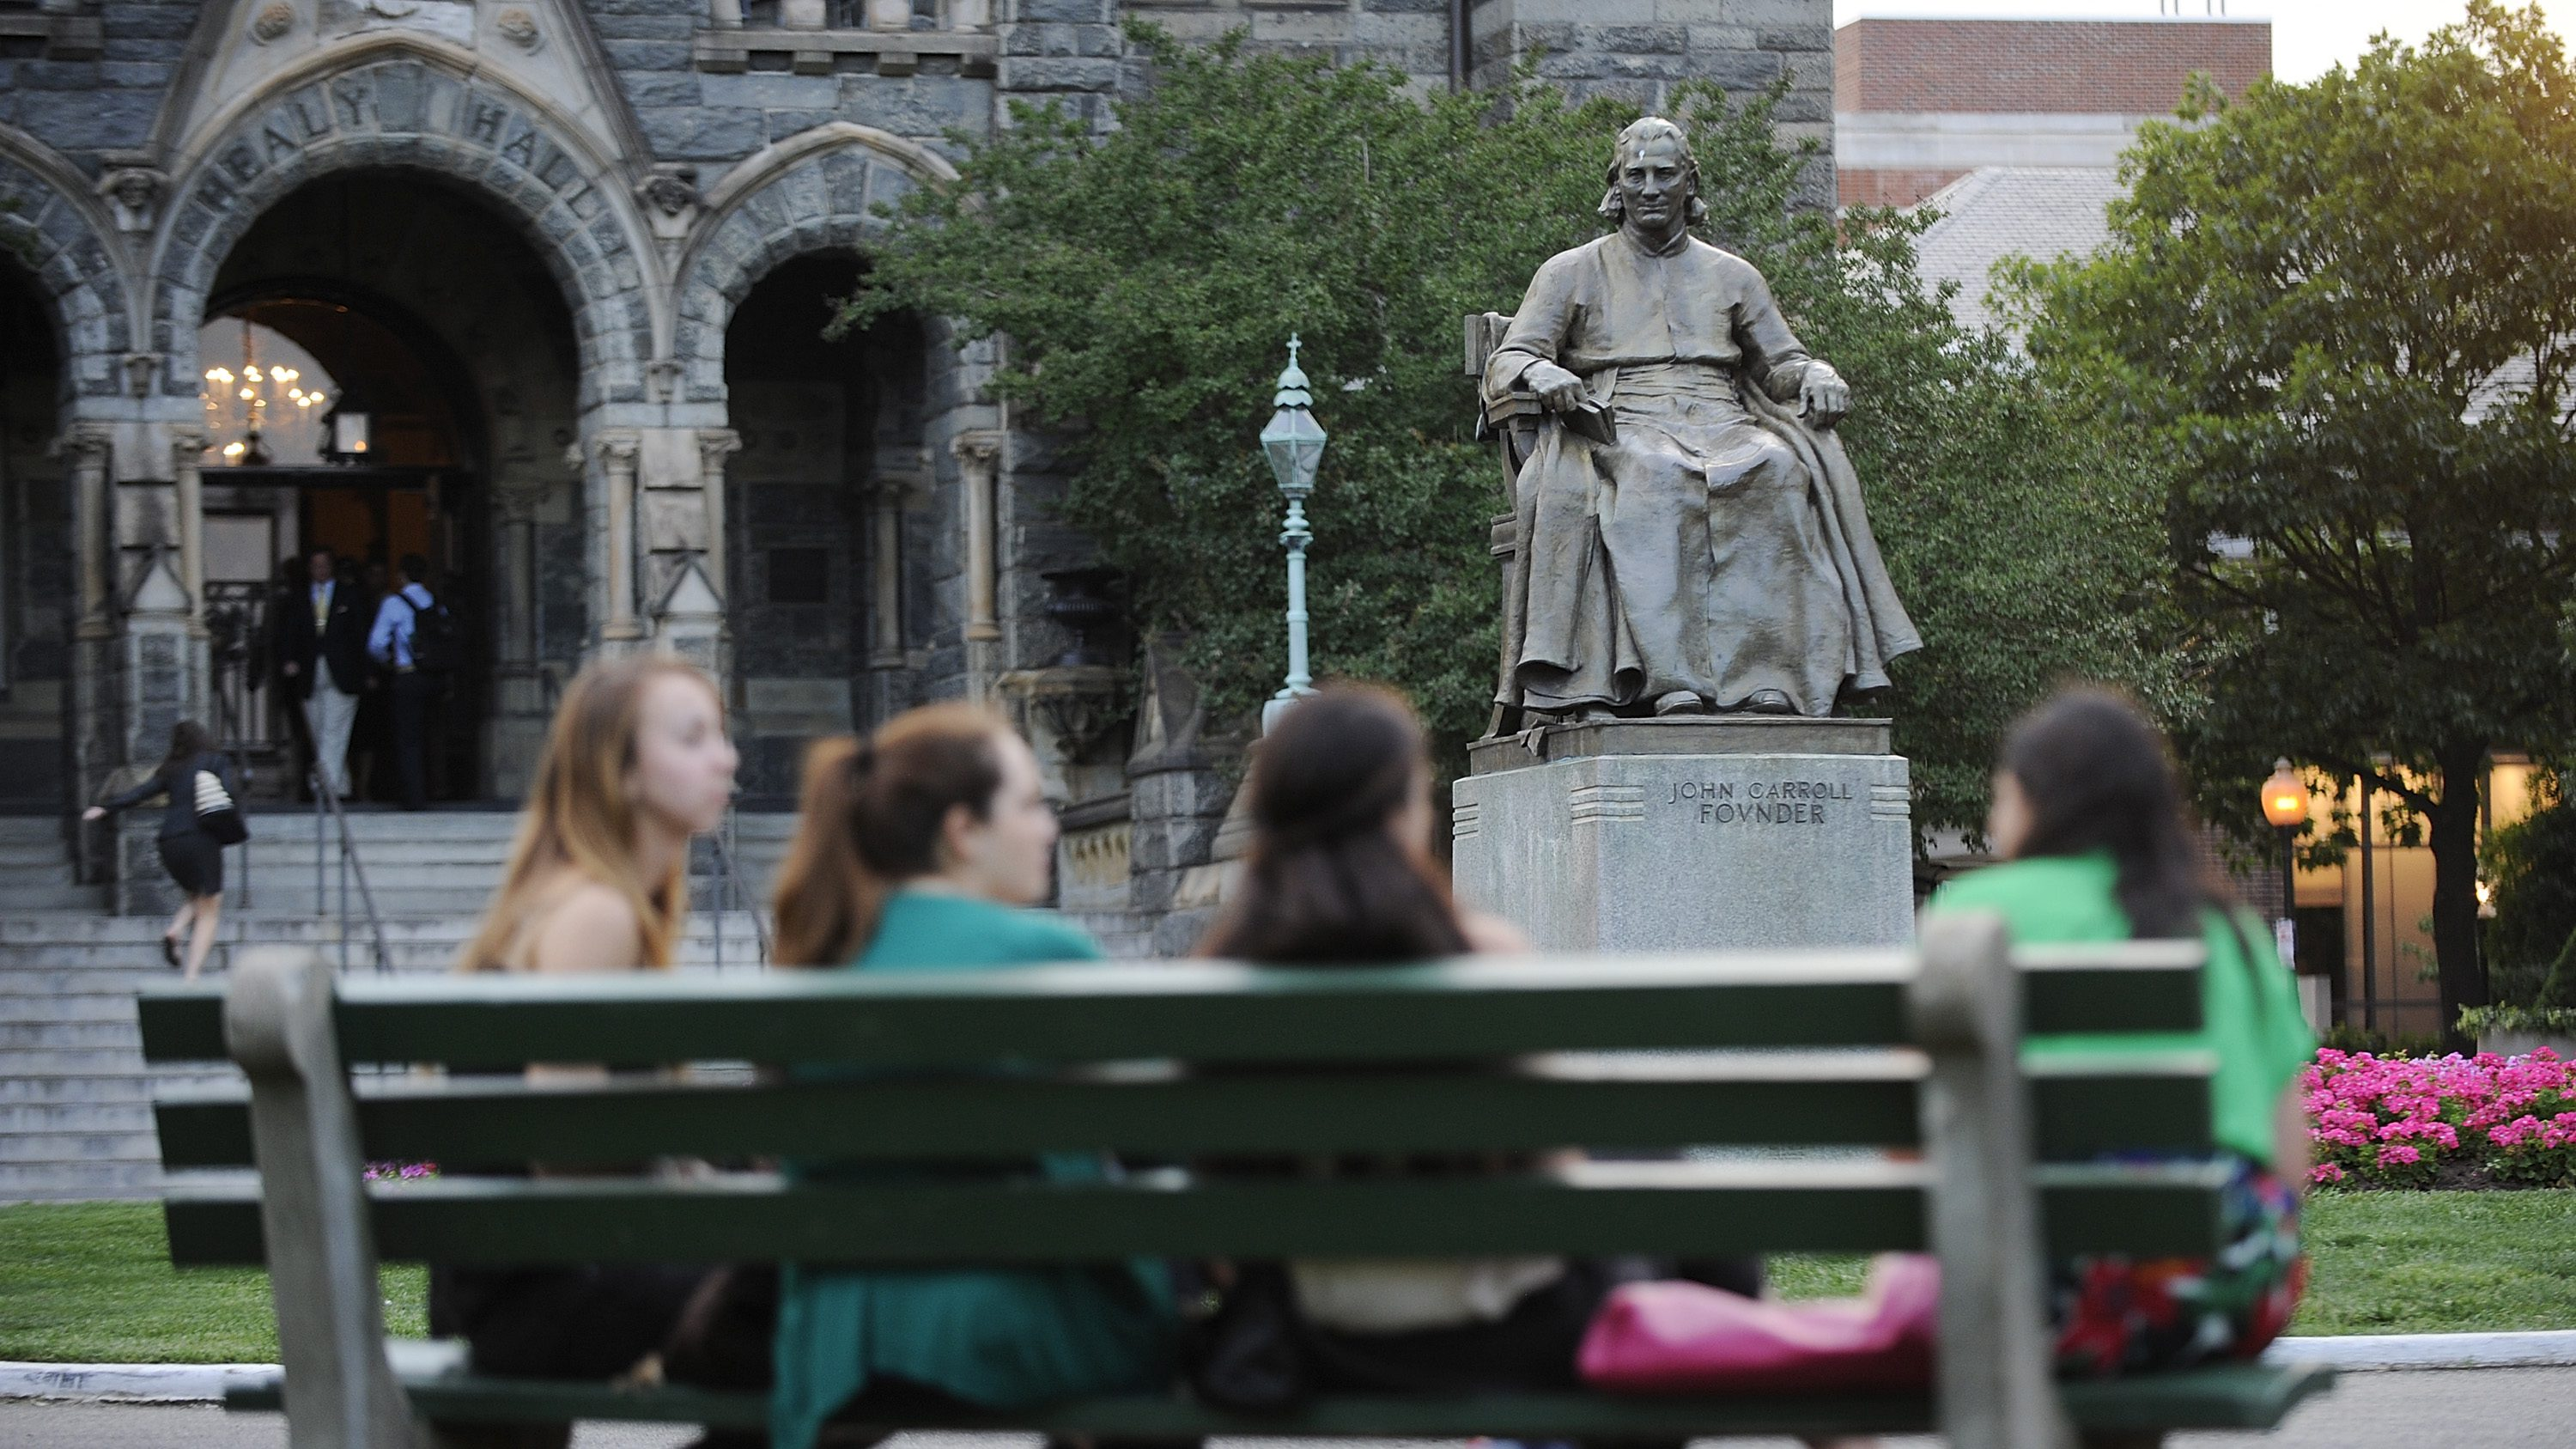 A statue of John Carroll, first Archbishop of Baltimore and founder of Georgetown University, overlooks a group of women seated on a bench on the Georgetown campus in Washington June 14, 2012. New rules requiring free access to prescription birth control for women with health insurance go into effect on August 1, 2012, but controversy lingers at some Catholic institutions struggling to balance the requirement with their opposition to contraception. At Georgetown, the nation's oldest Catholic university, students and administration officials are still wrestling with the requirement to cover contraceptives as part of larger effort to expand no-cost preventive care for women. Picture taken June 14, 2012. REUTERS/Jonathan Ernst    (UNITED STATES - Tags: HEALTH EDUCATION SOCIETY) - RTR35V72